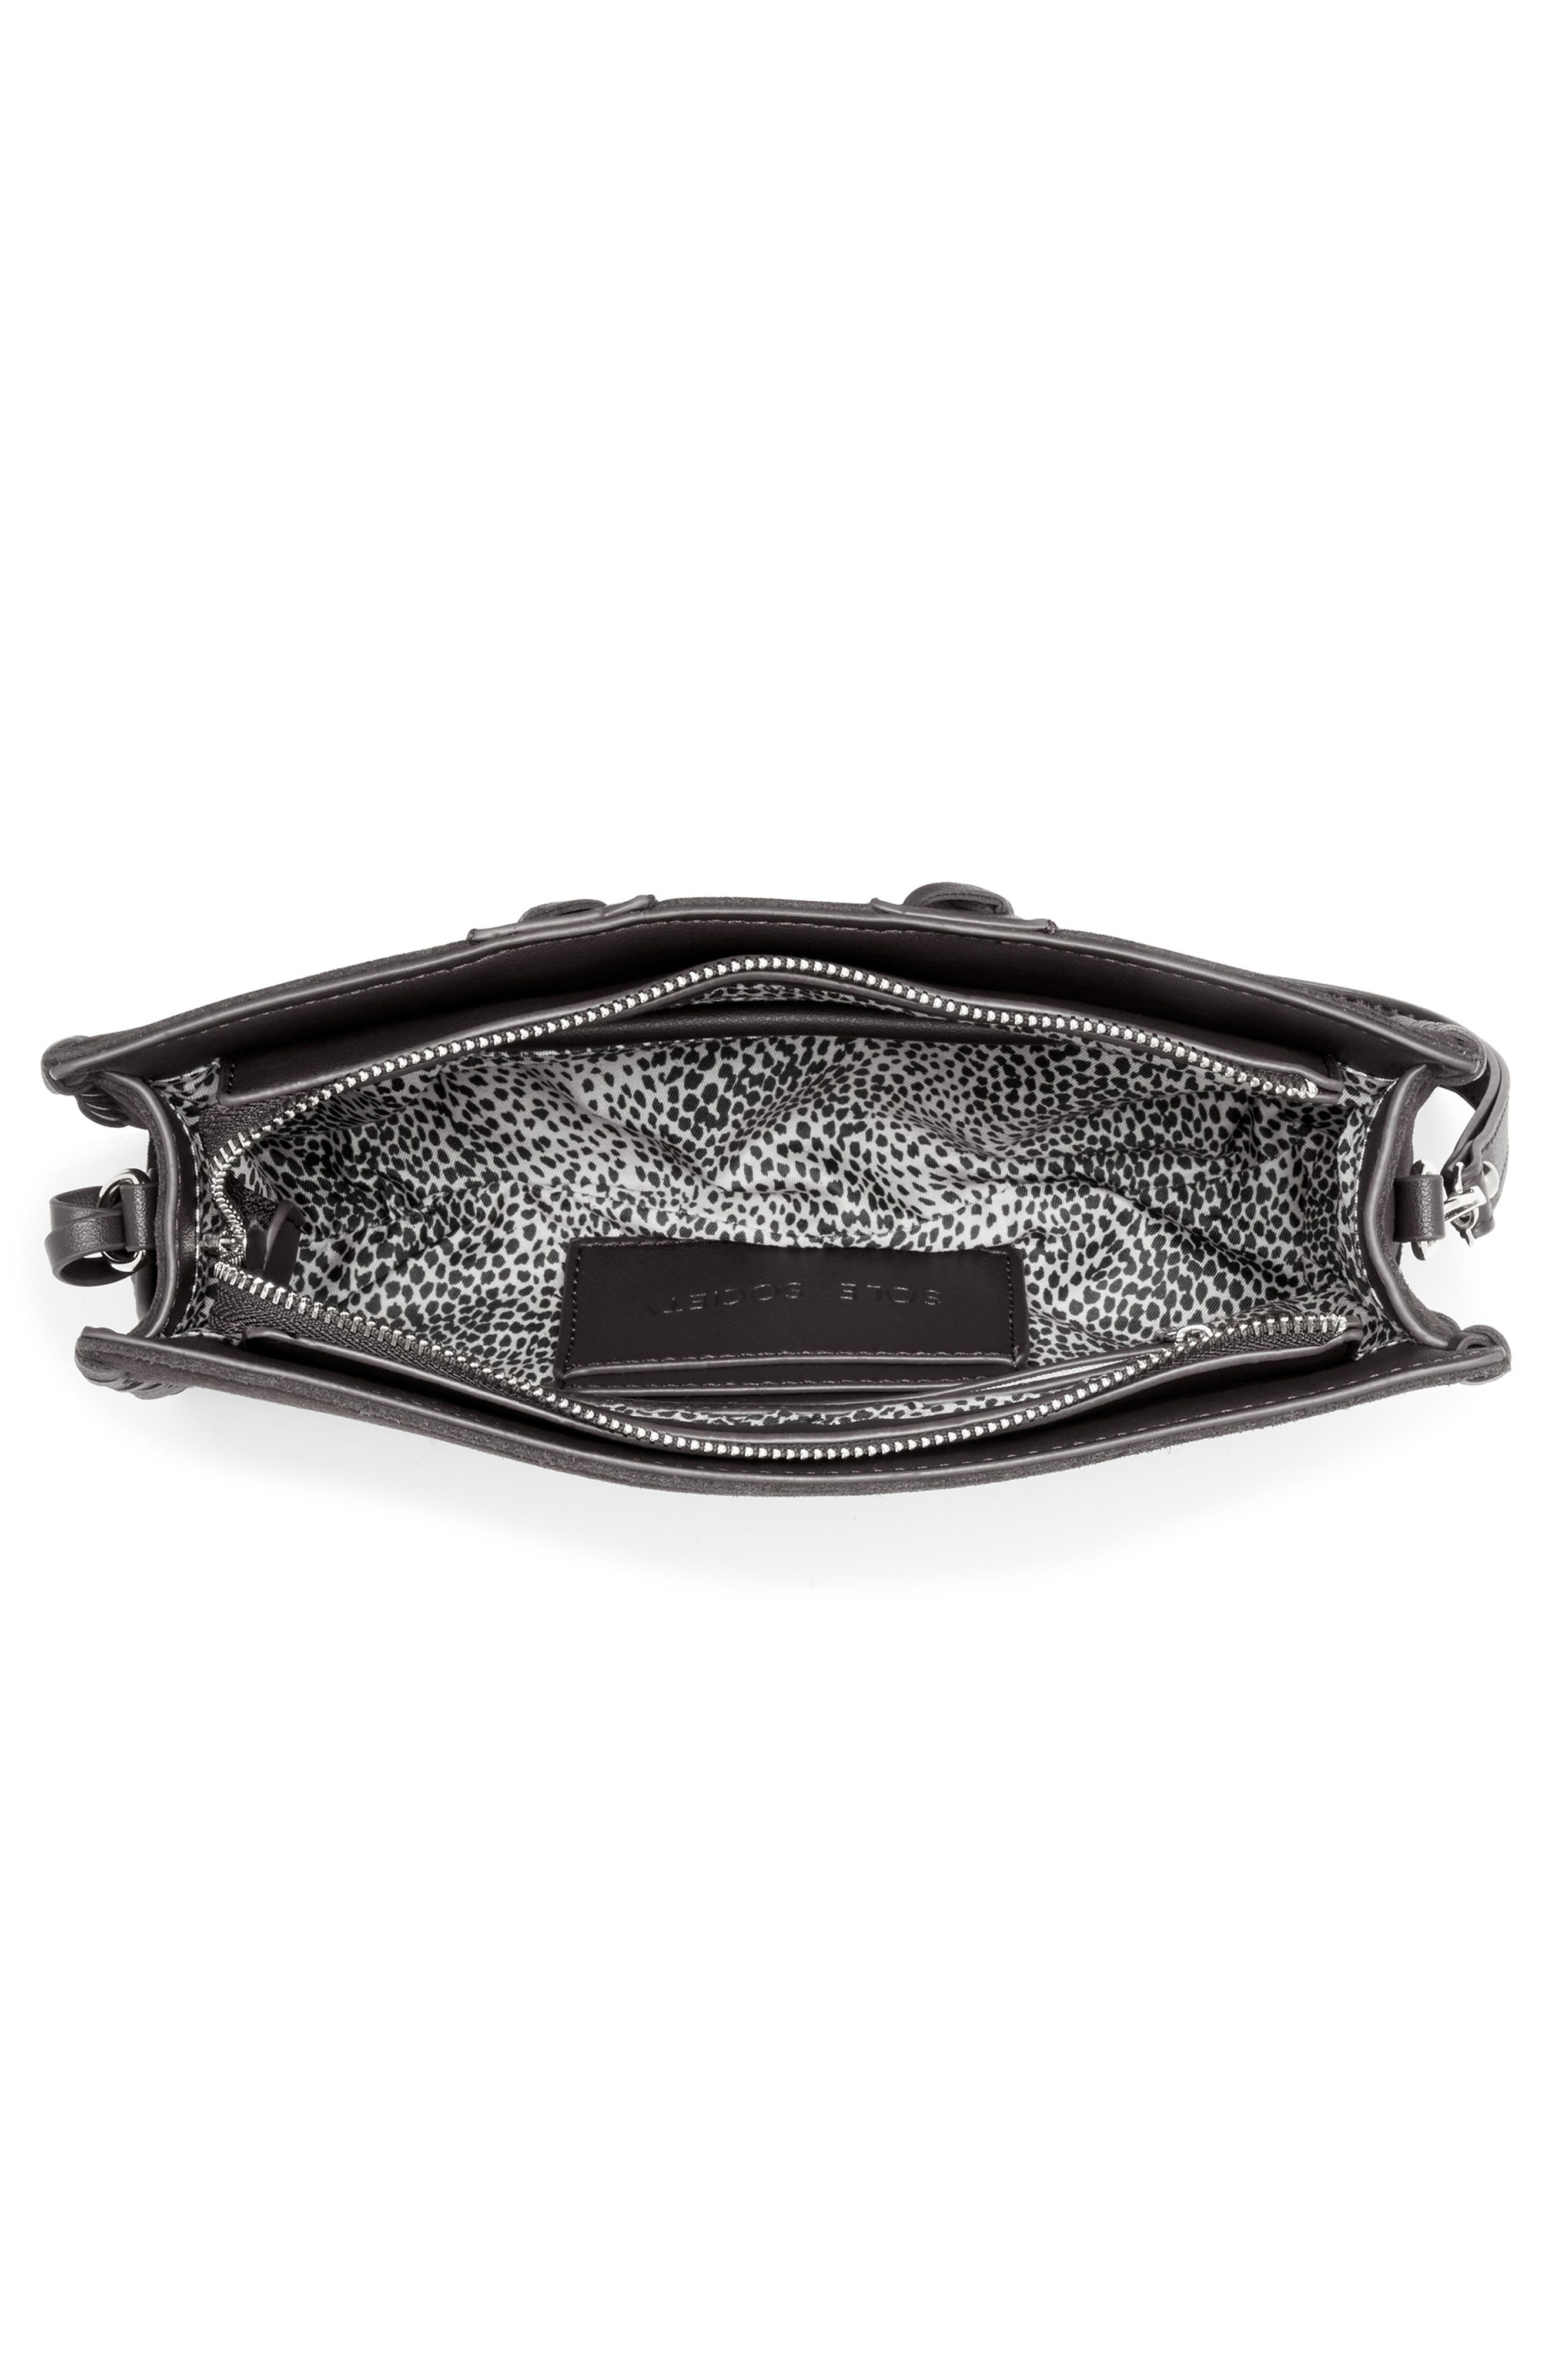 SOLE SOCIETY, Wahli Clutch, Alternate thumbnail 3, color, BLACK